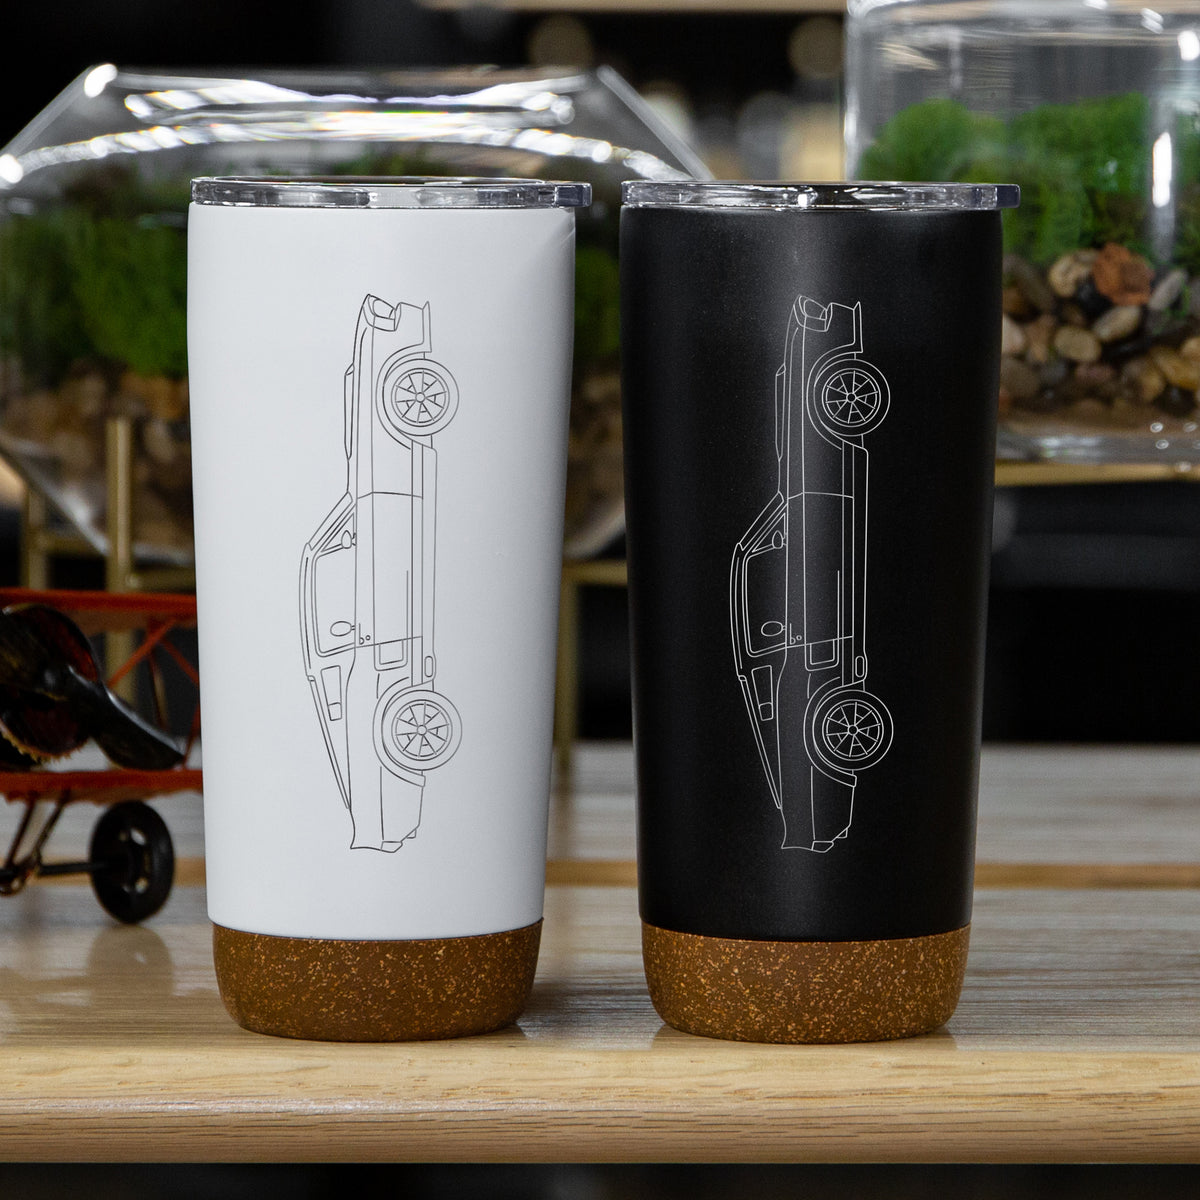 Ford Mustang Shelby GT500 1967 Side Profile Insulated Stainless Steel Coffee Tumbler - 20 oz